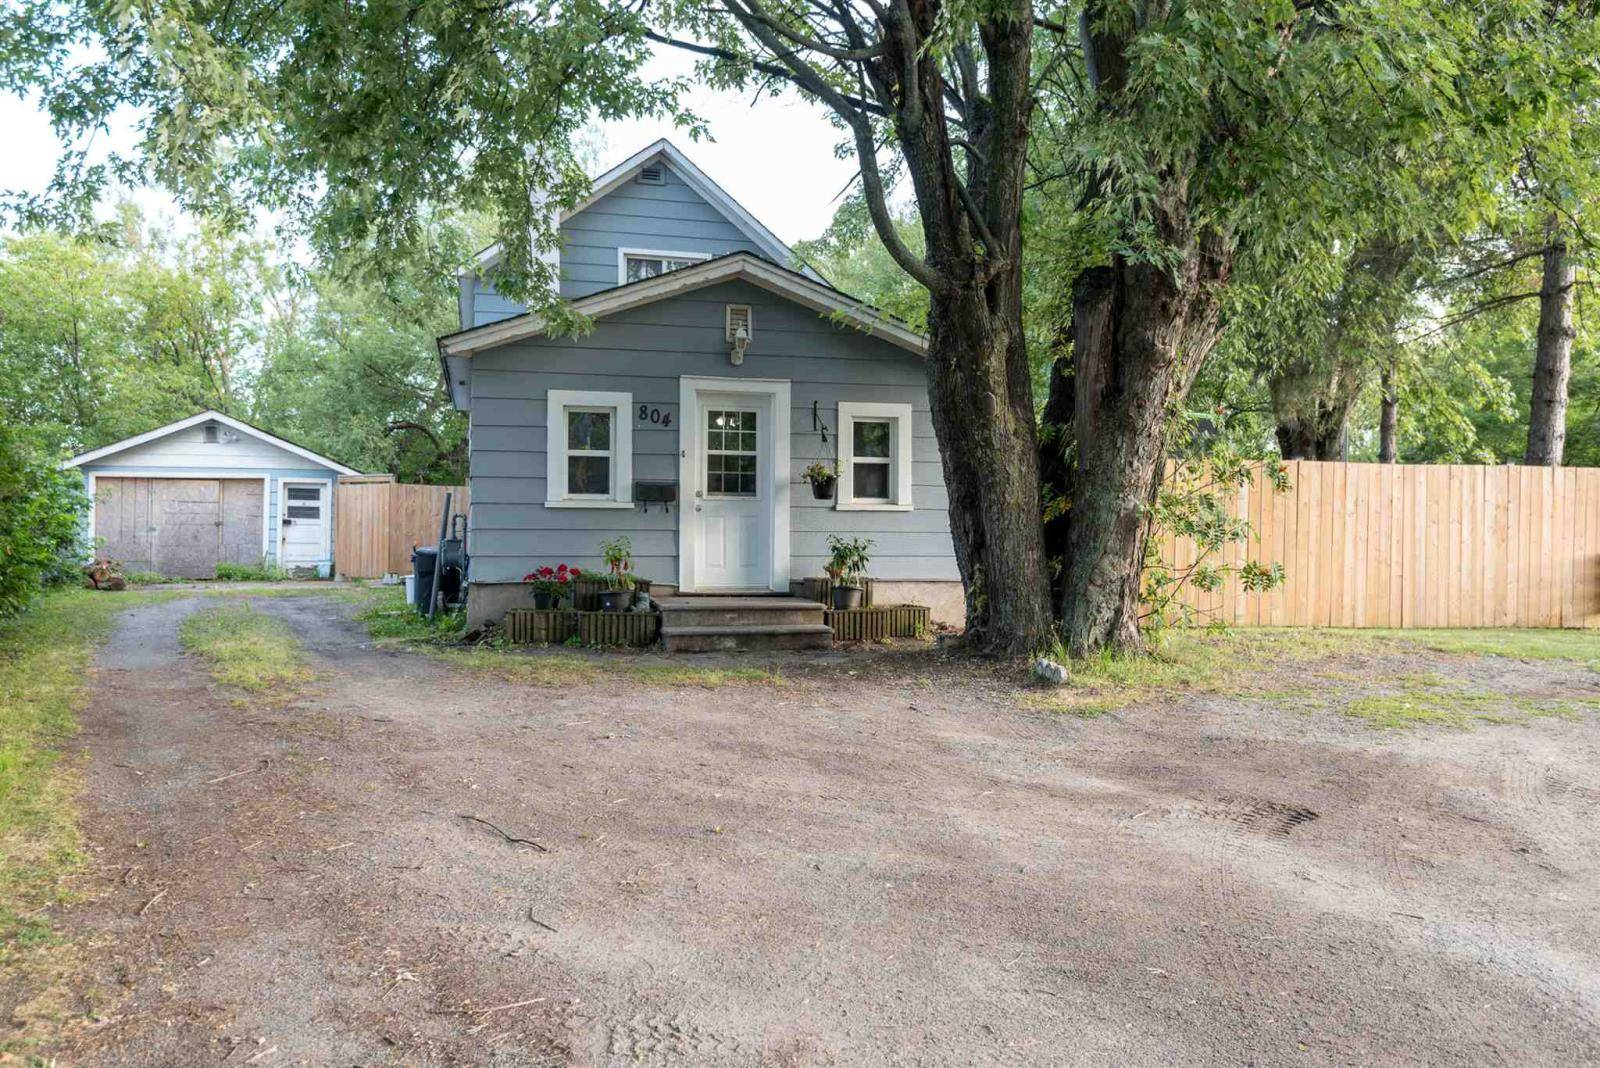 House for sale at 804 Northern Ave Thunder Bay Ontario - MLS: TB193700